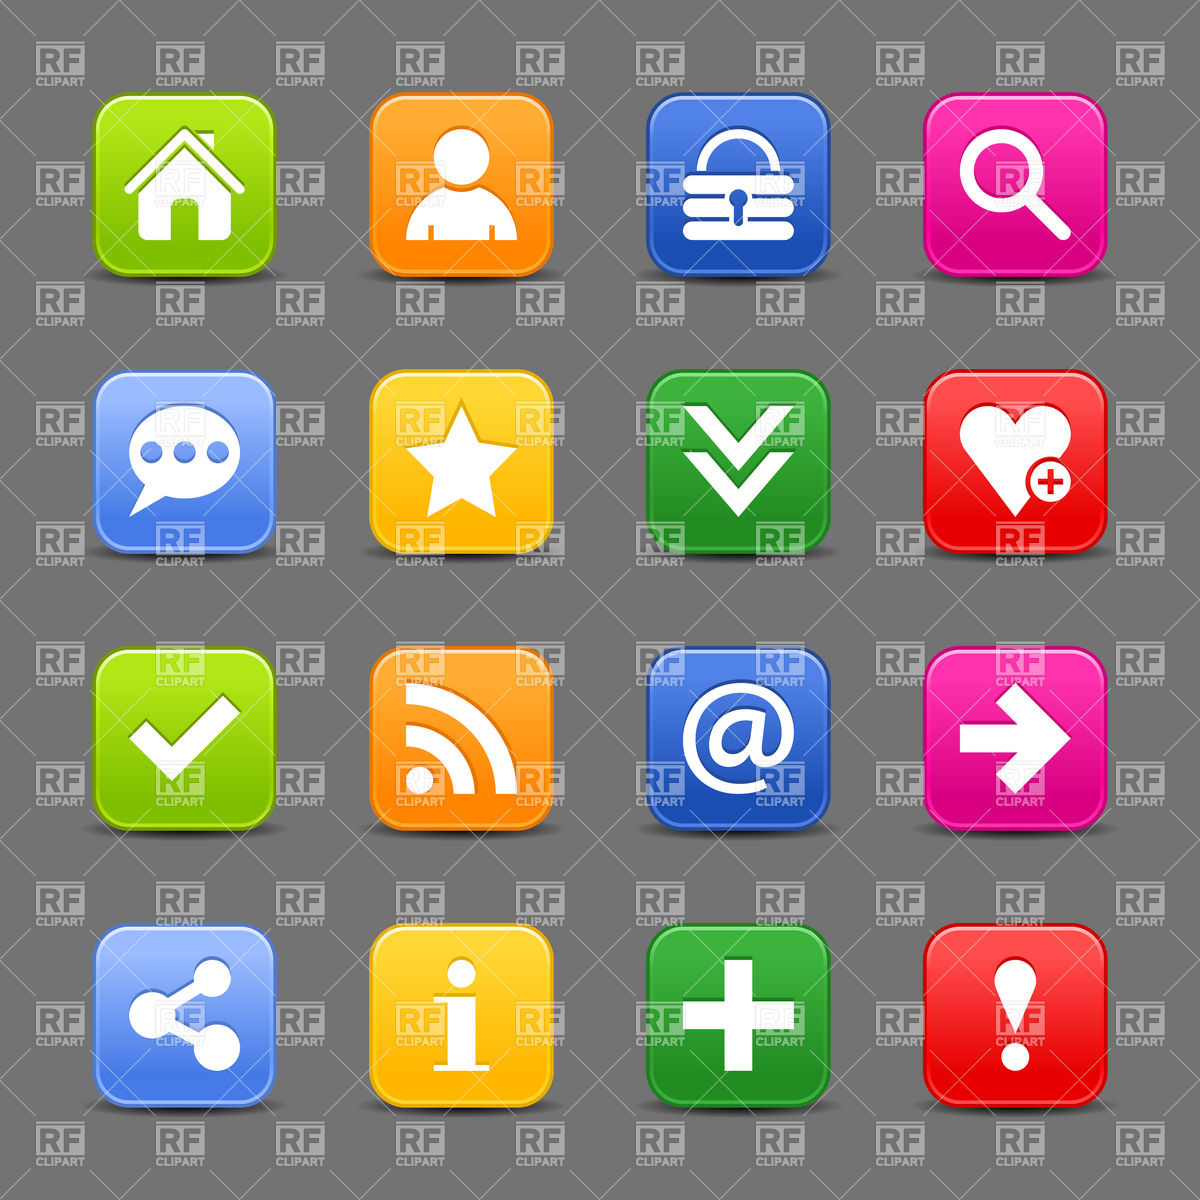 1200x1200 Blog And Social Network Simple Icons Vector Image Vector Artwork